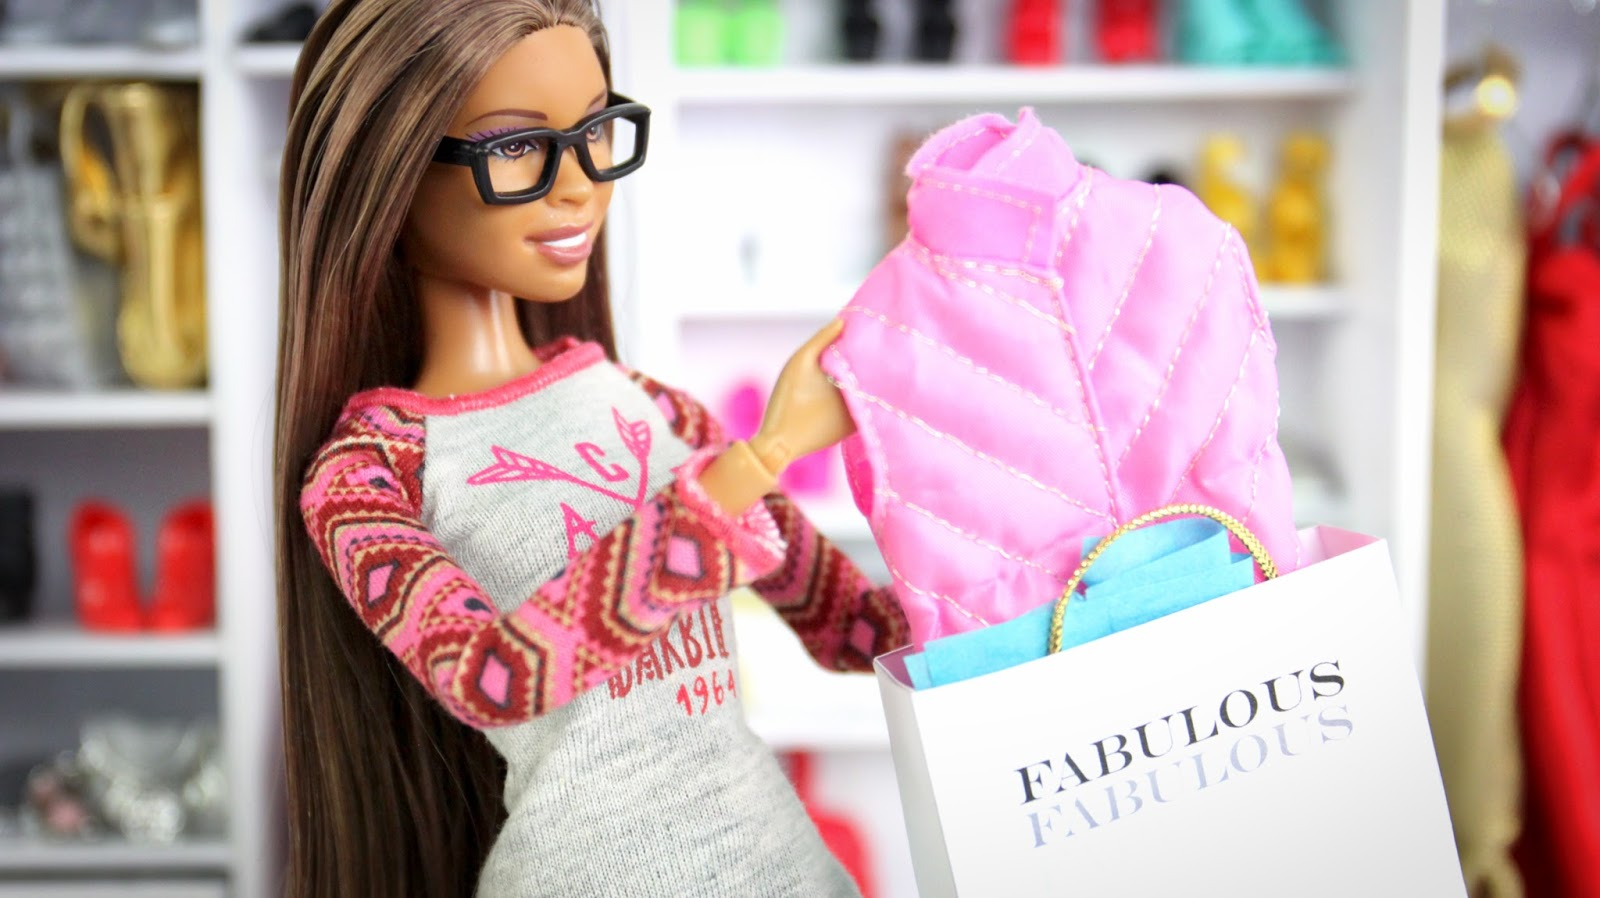 Barbie Fashion Haul | Plus Ripped Jeans And Shopping Bags